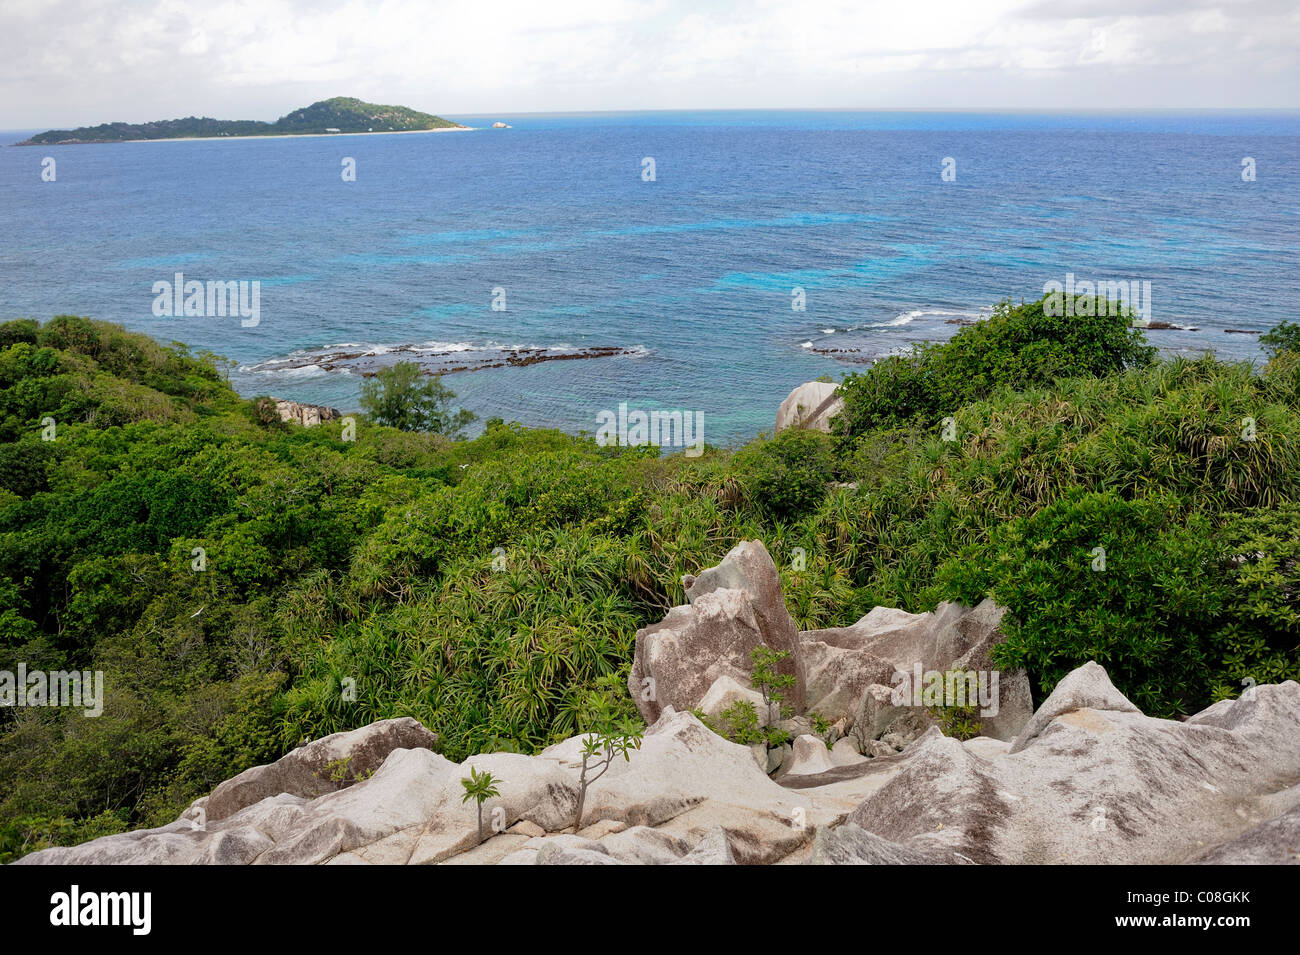 Cousin island, Praslin, Seychelles, Aerial panoramic view on Indian ocean - Stock Image